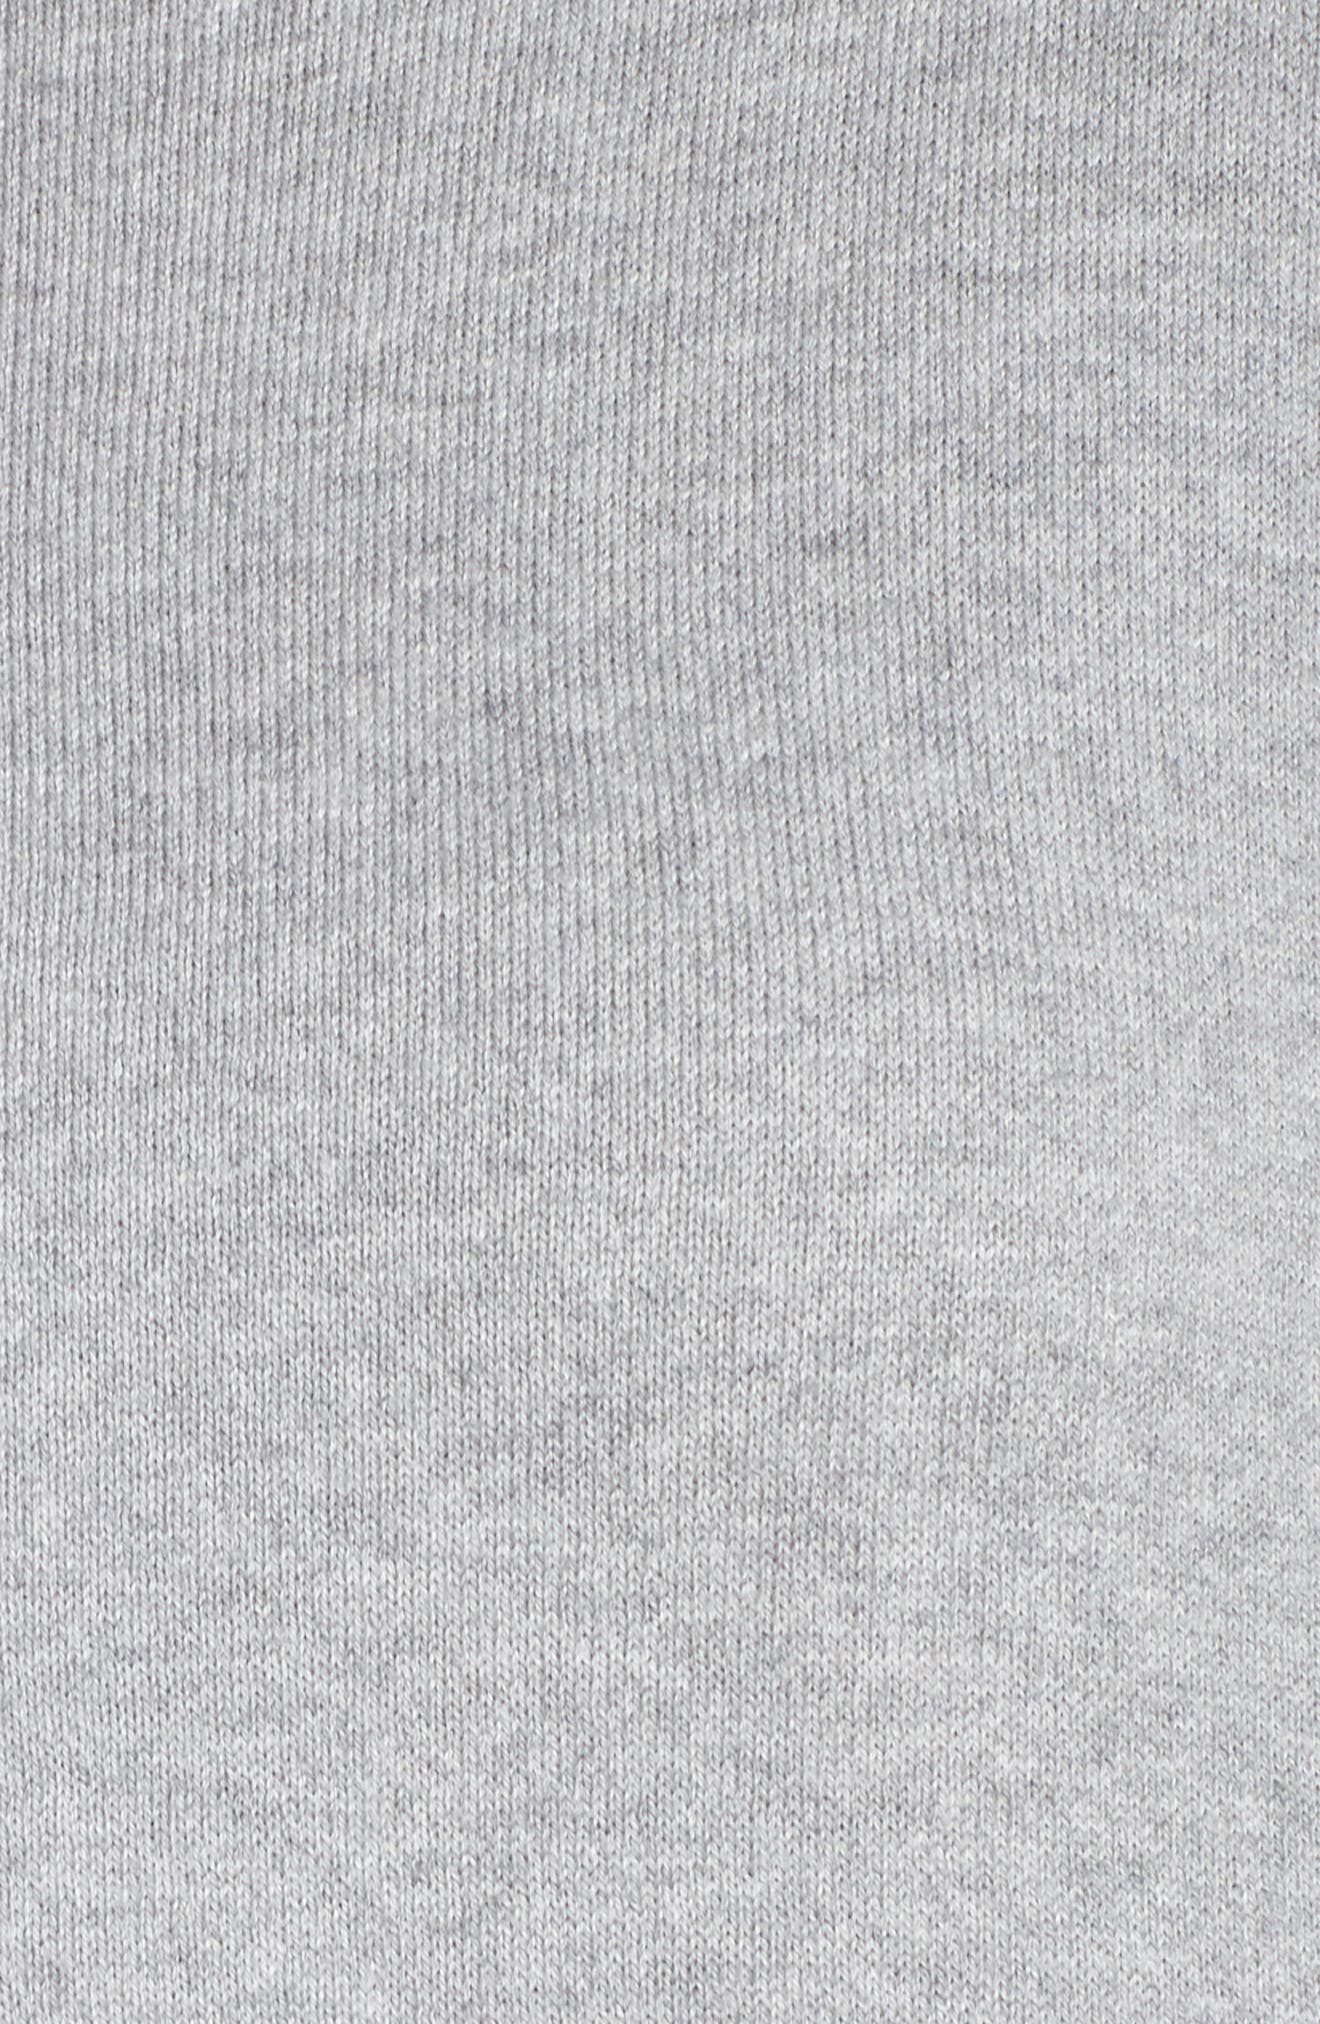 Relaxed Cotton & Cashmere Sweater,                             Alternate thumbnail 5, color,                             Grey Heather